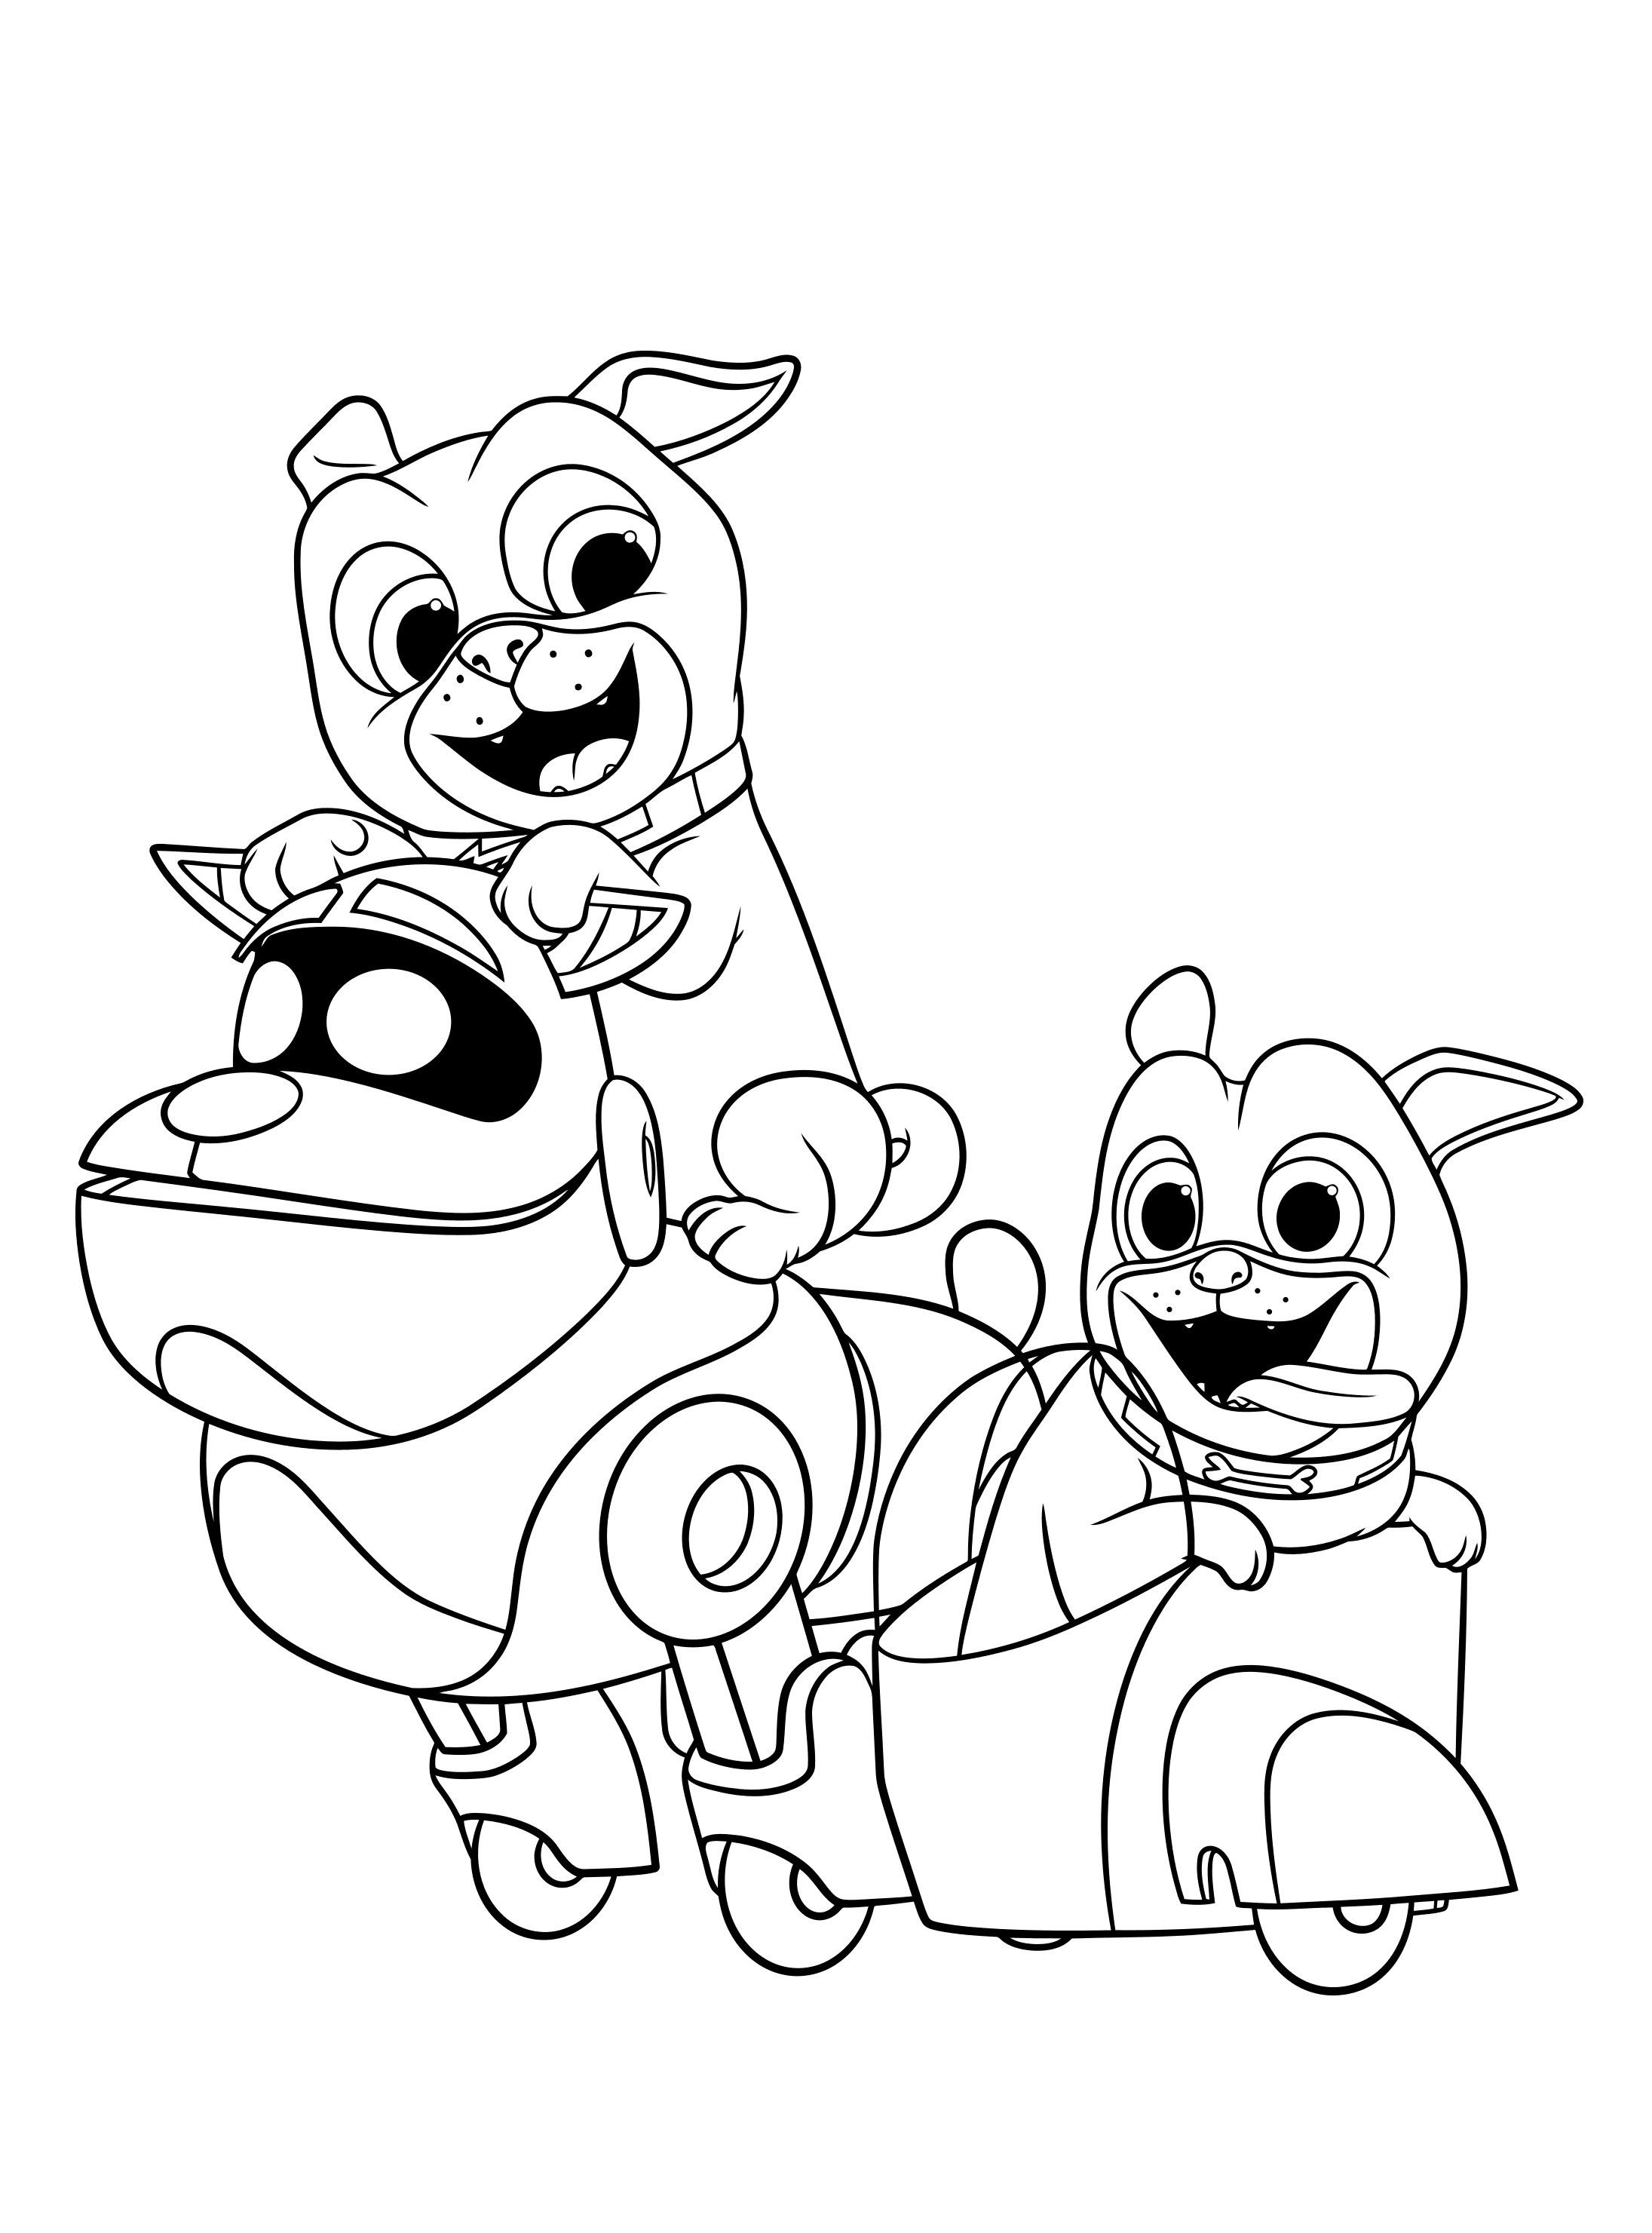 coloring cartoon dog magical dog coloring pages of poochies bowwows flea bags coloring cartoon dog